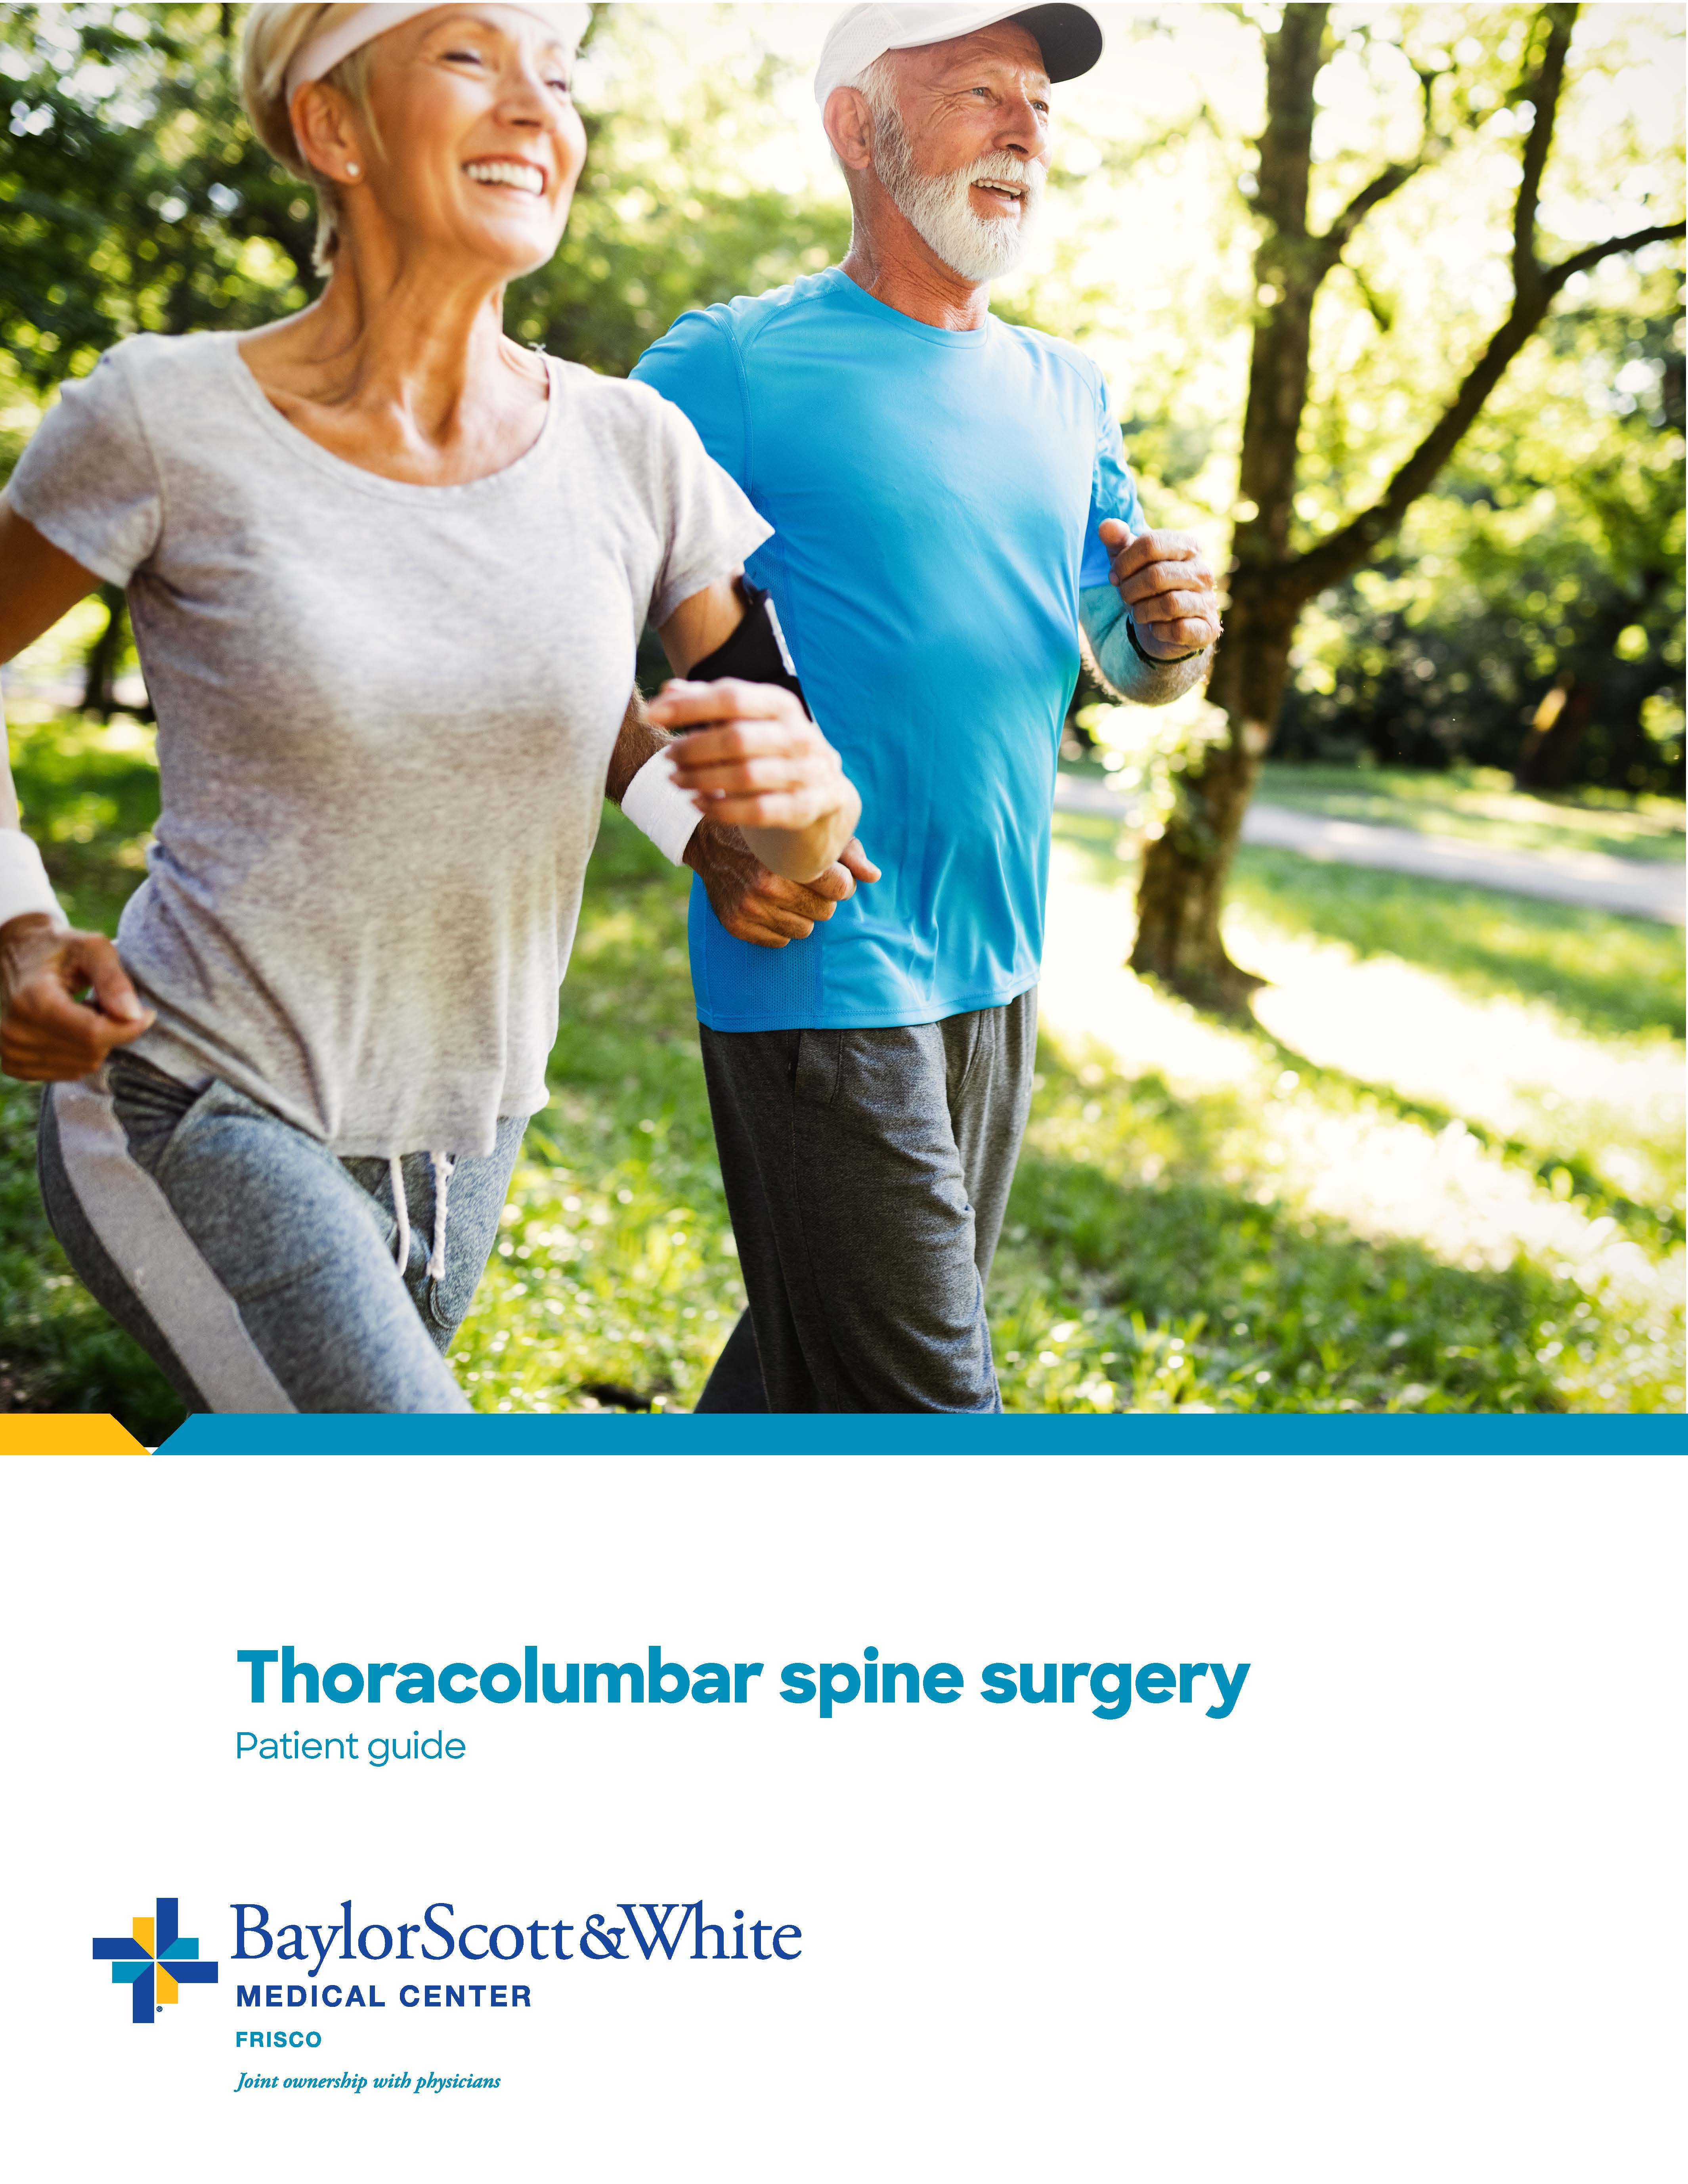 Thoracolumbar Spine Surgery Guide